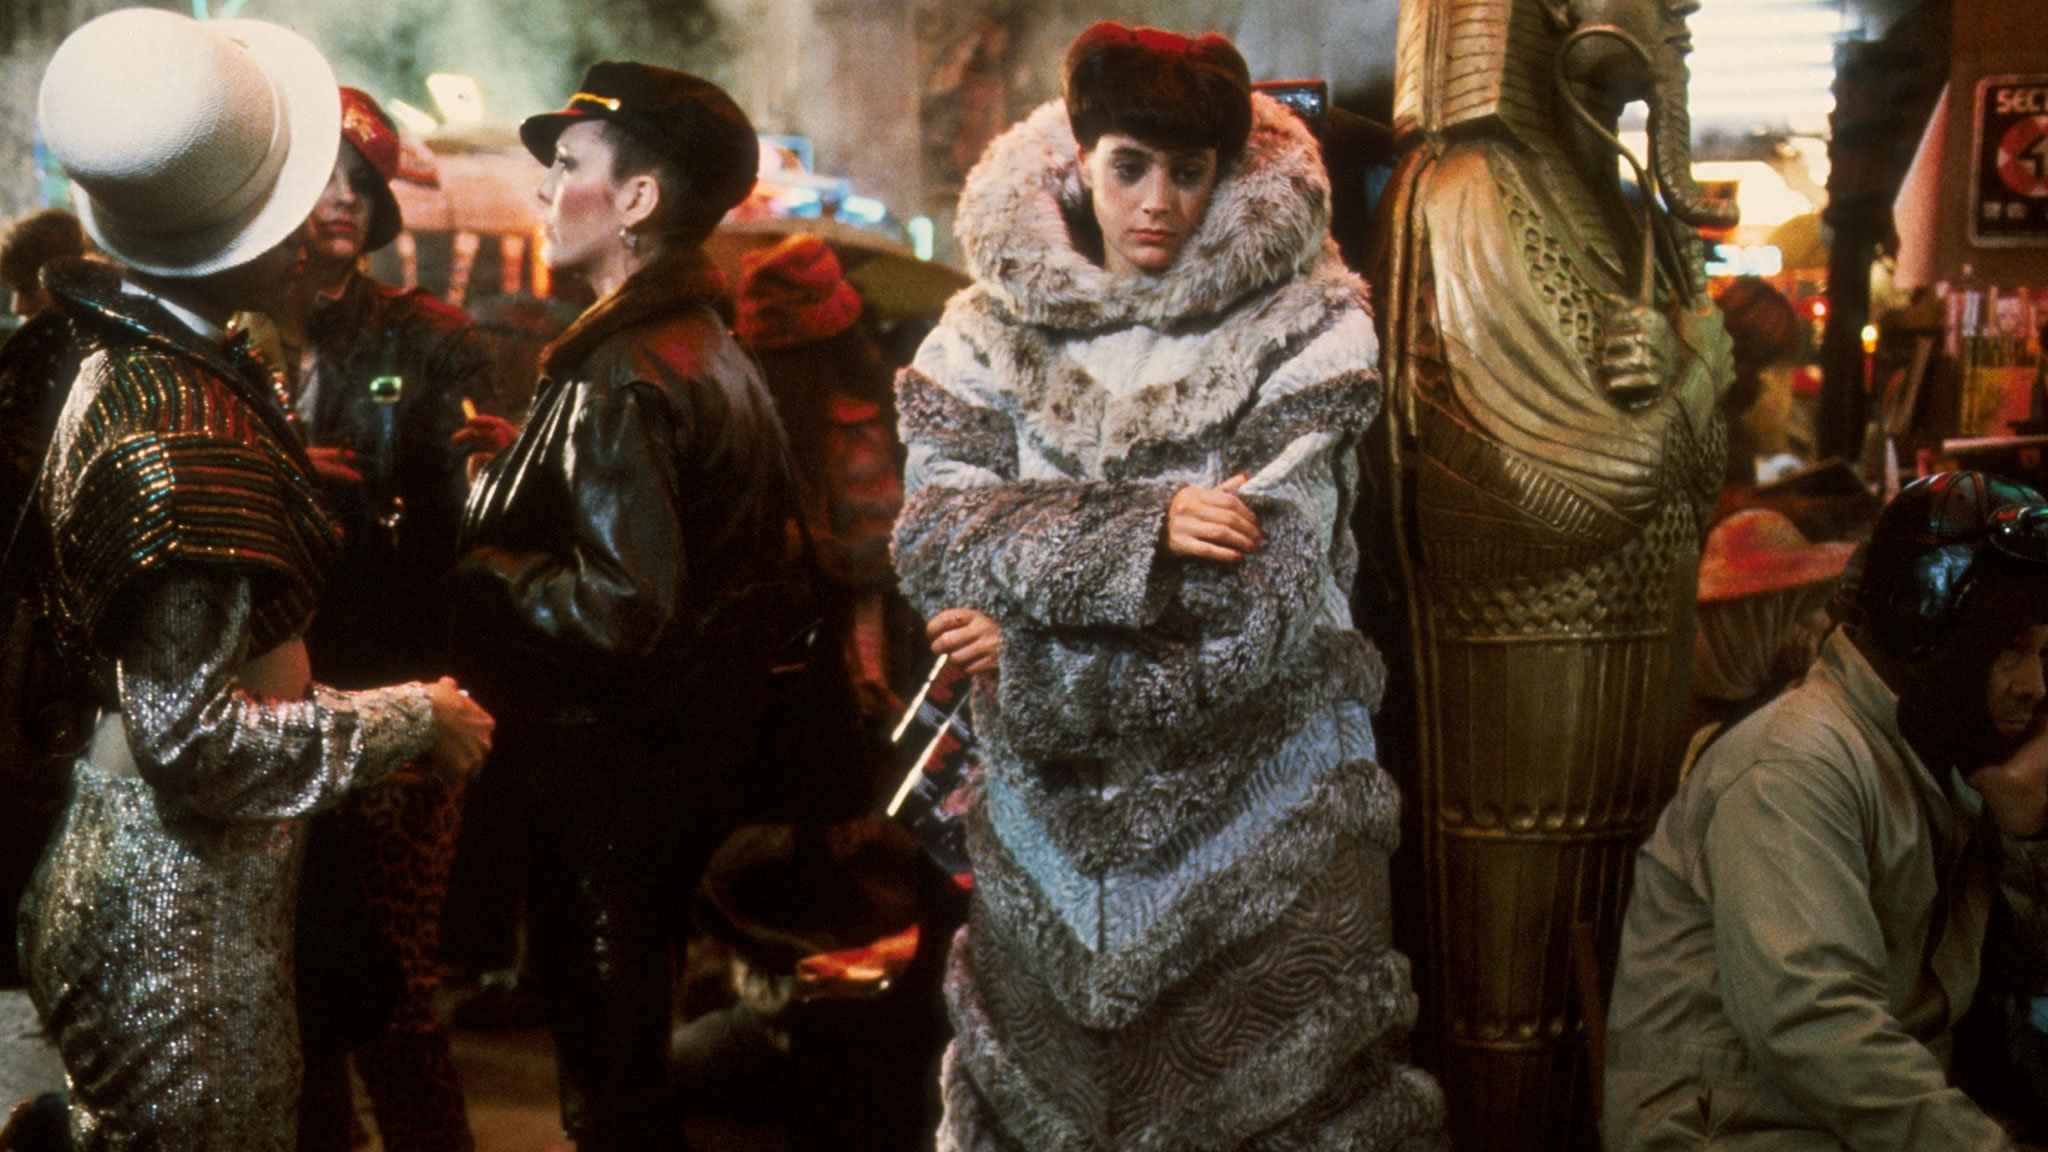 Where's our sweet Blade Runner fashion, Hollywood?